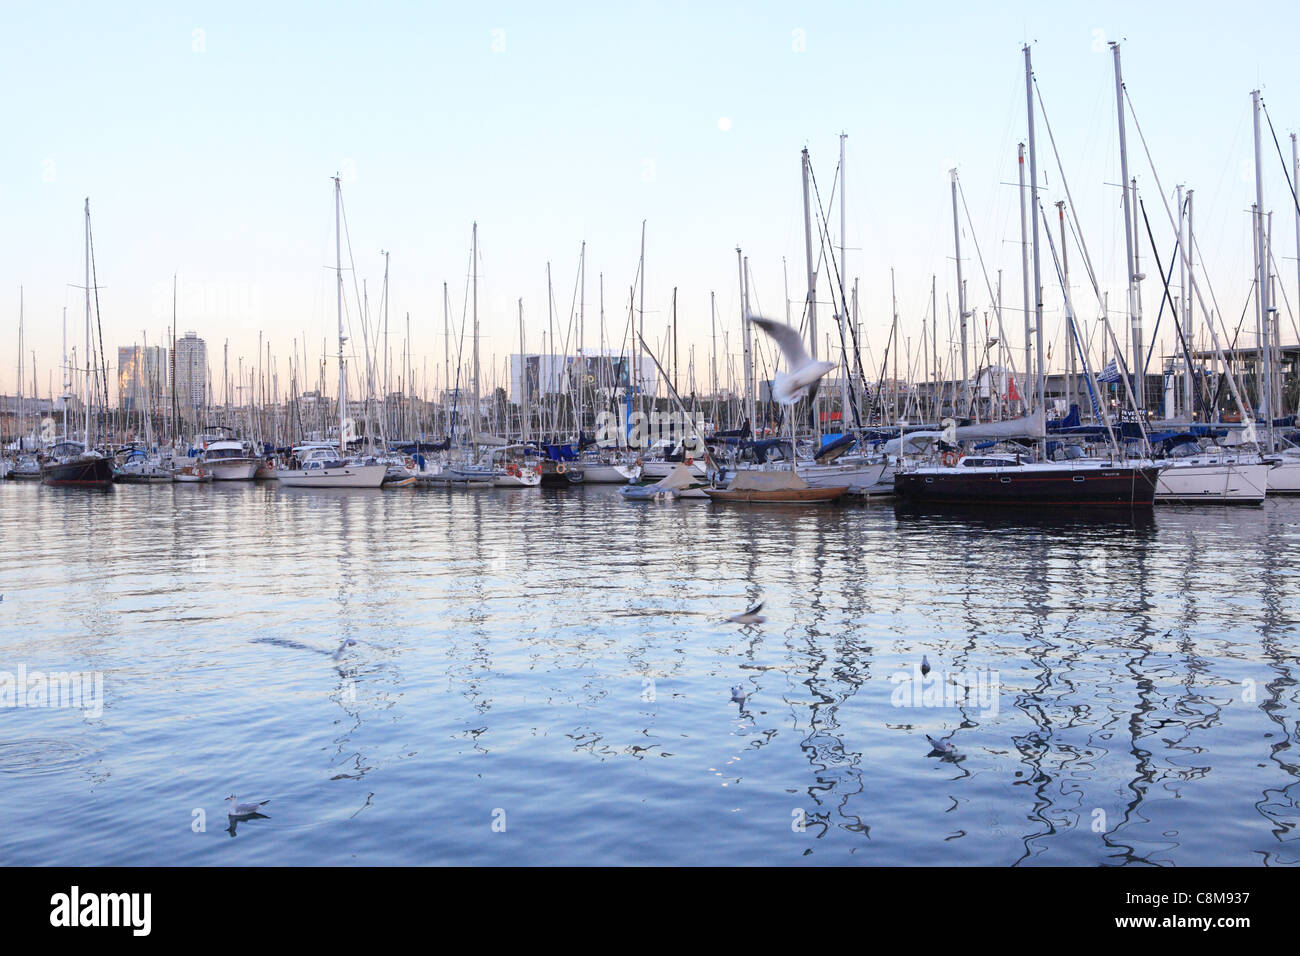 The Darsena del Commerc, the marina at Port Vell in Barcelona, Spain - Stock Image